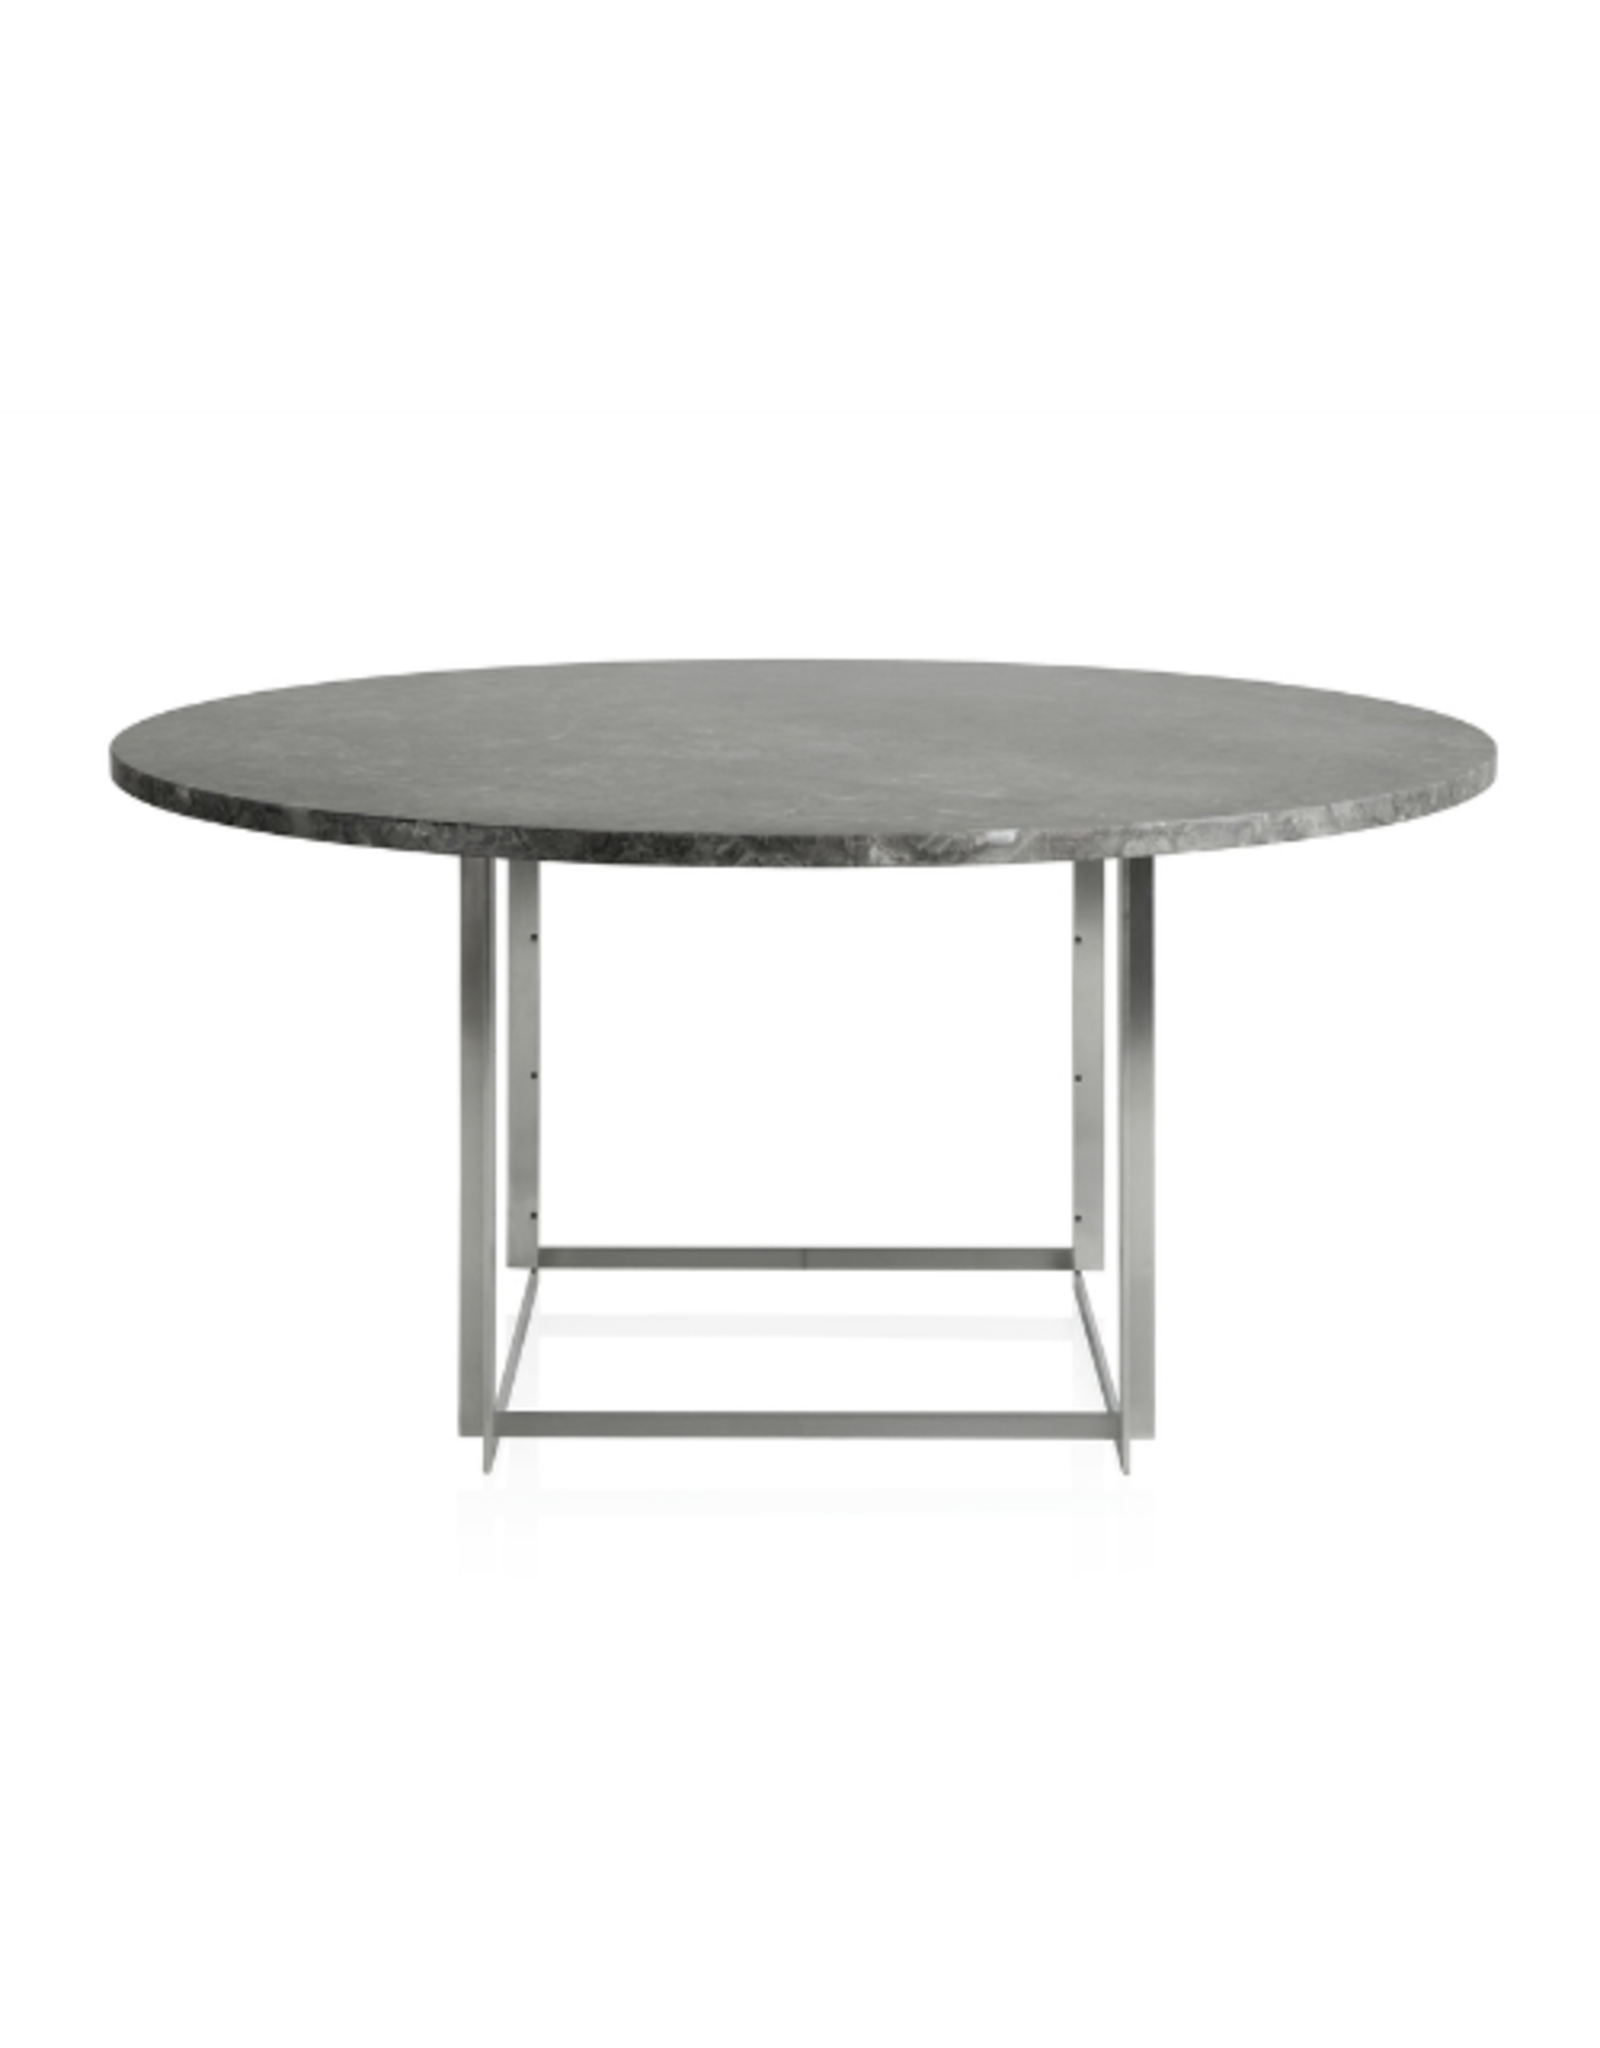 FRITZ HANSEN PK54 DINING TABLE IN GREY-BROWN (HONED) MARBLE TABLE TOP